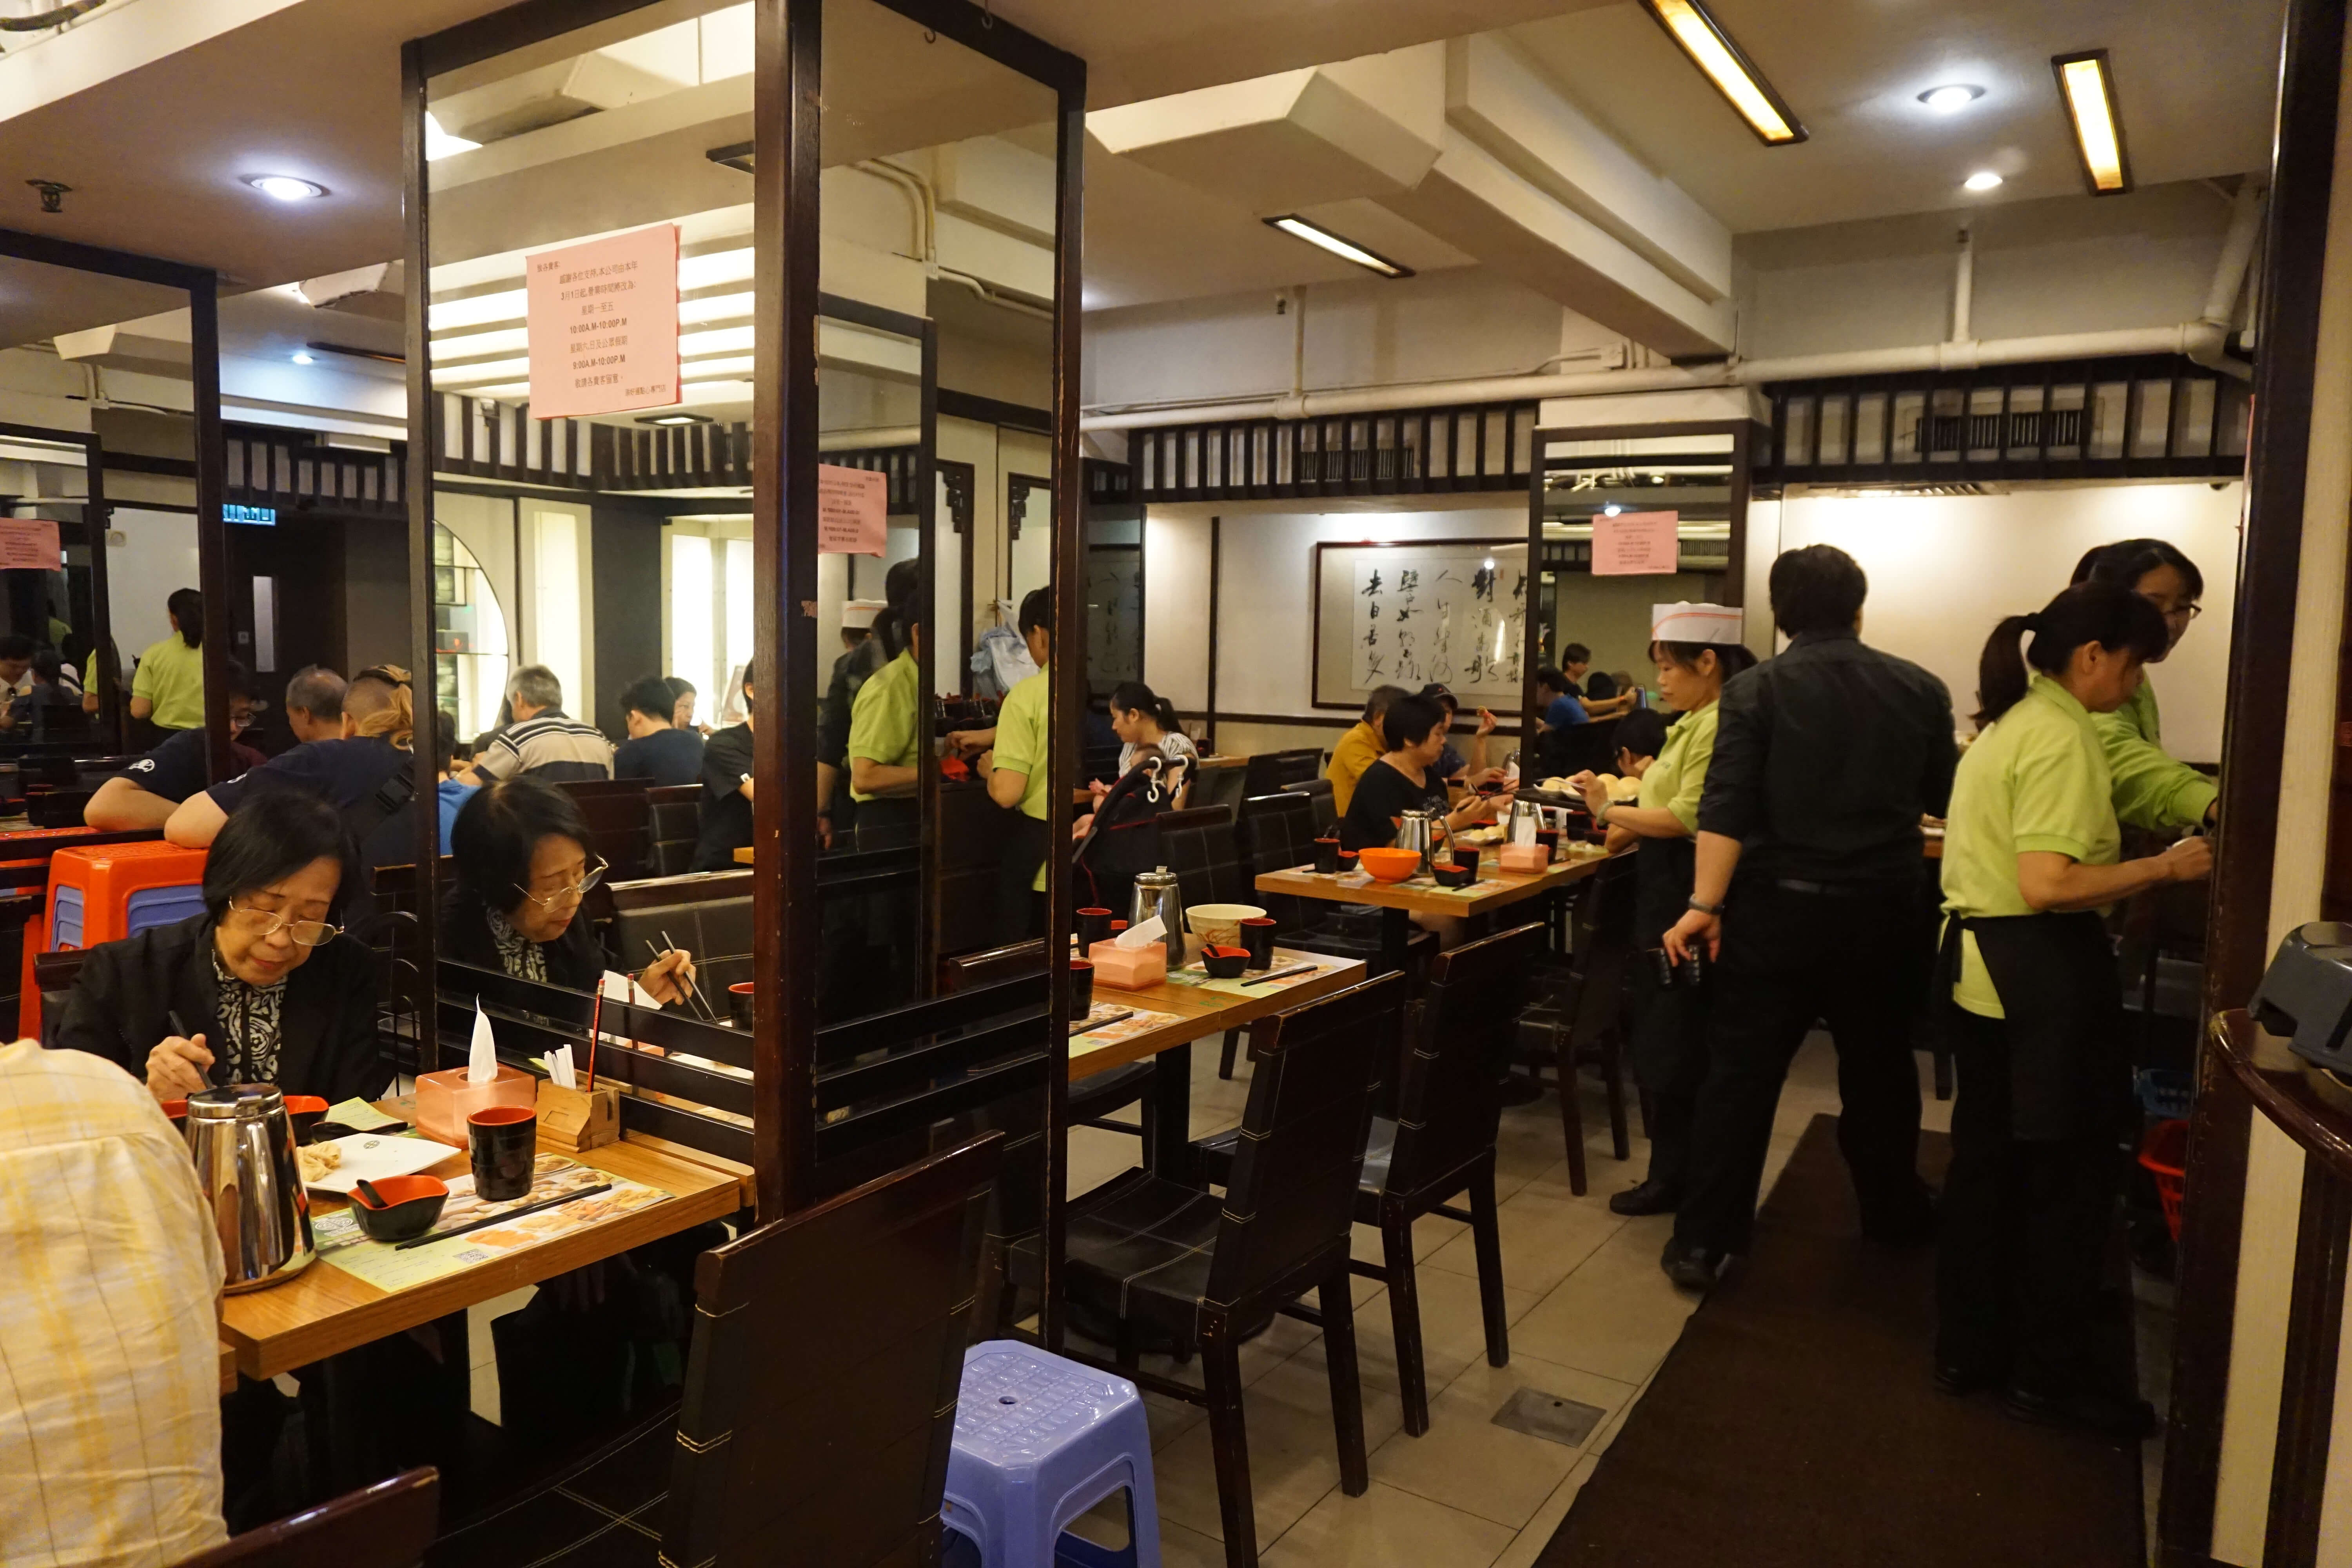 People eating in a Dim Sum restaurant